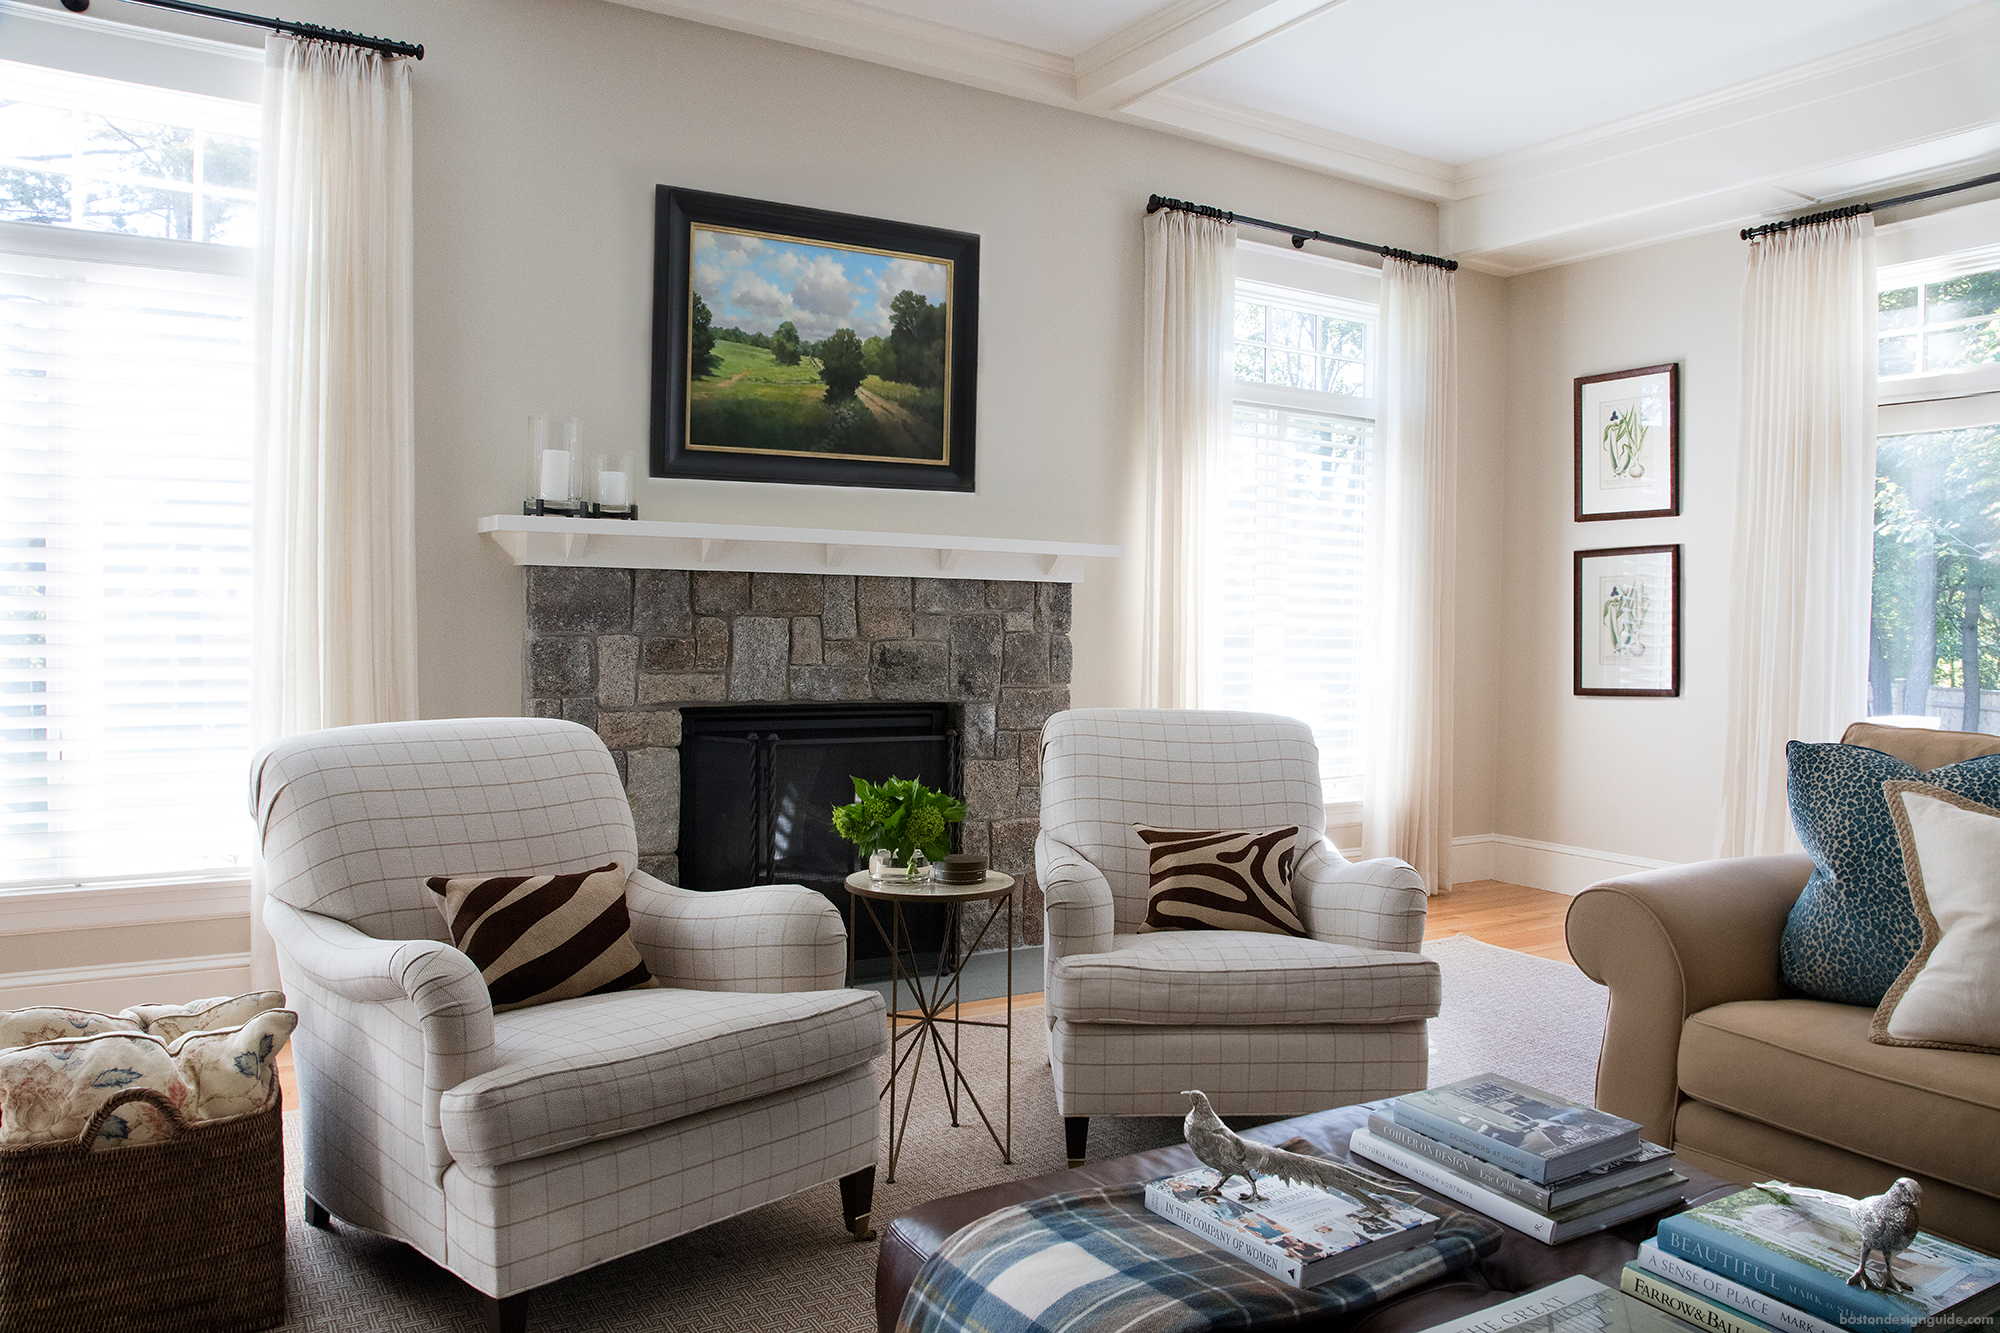 design boston styling ma curreycompany pages interior services plymouth